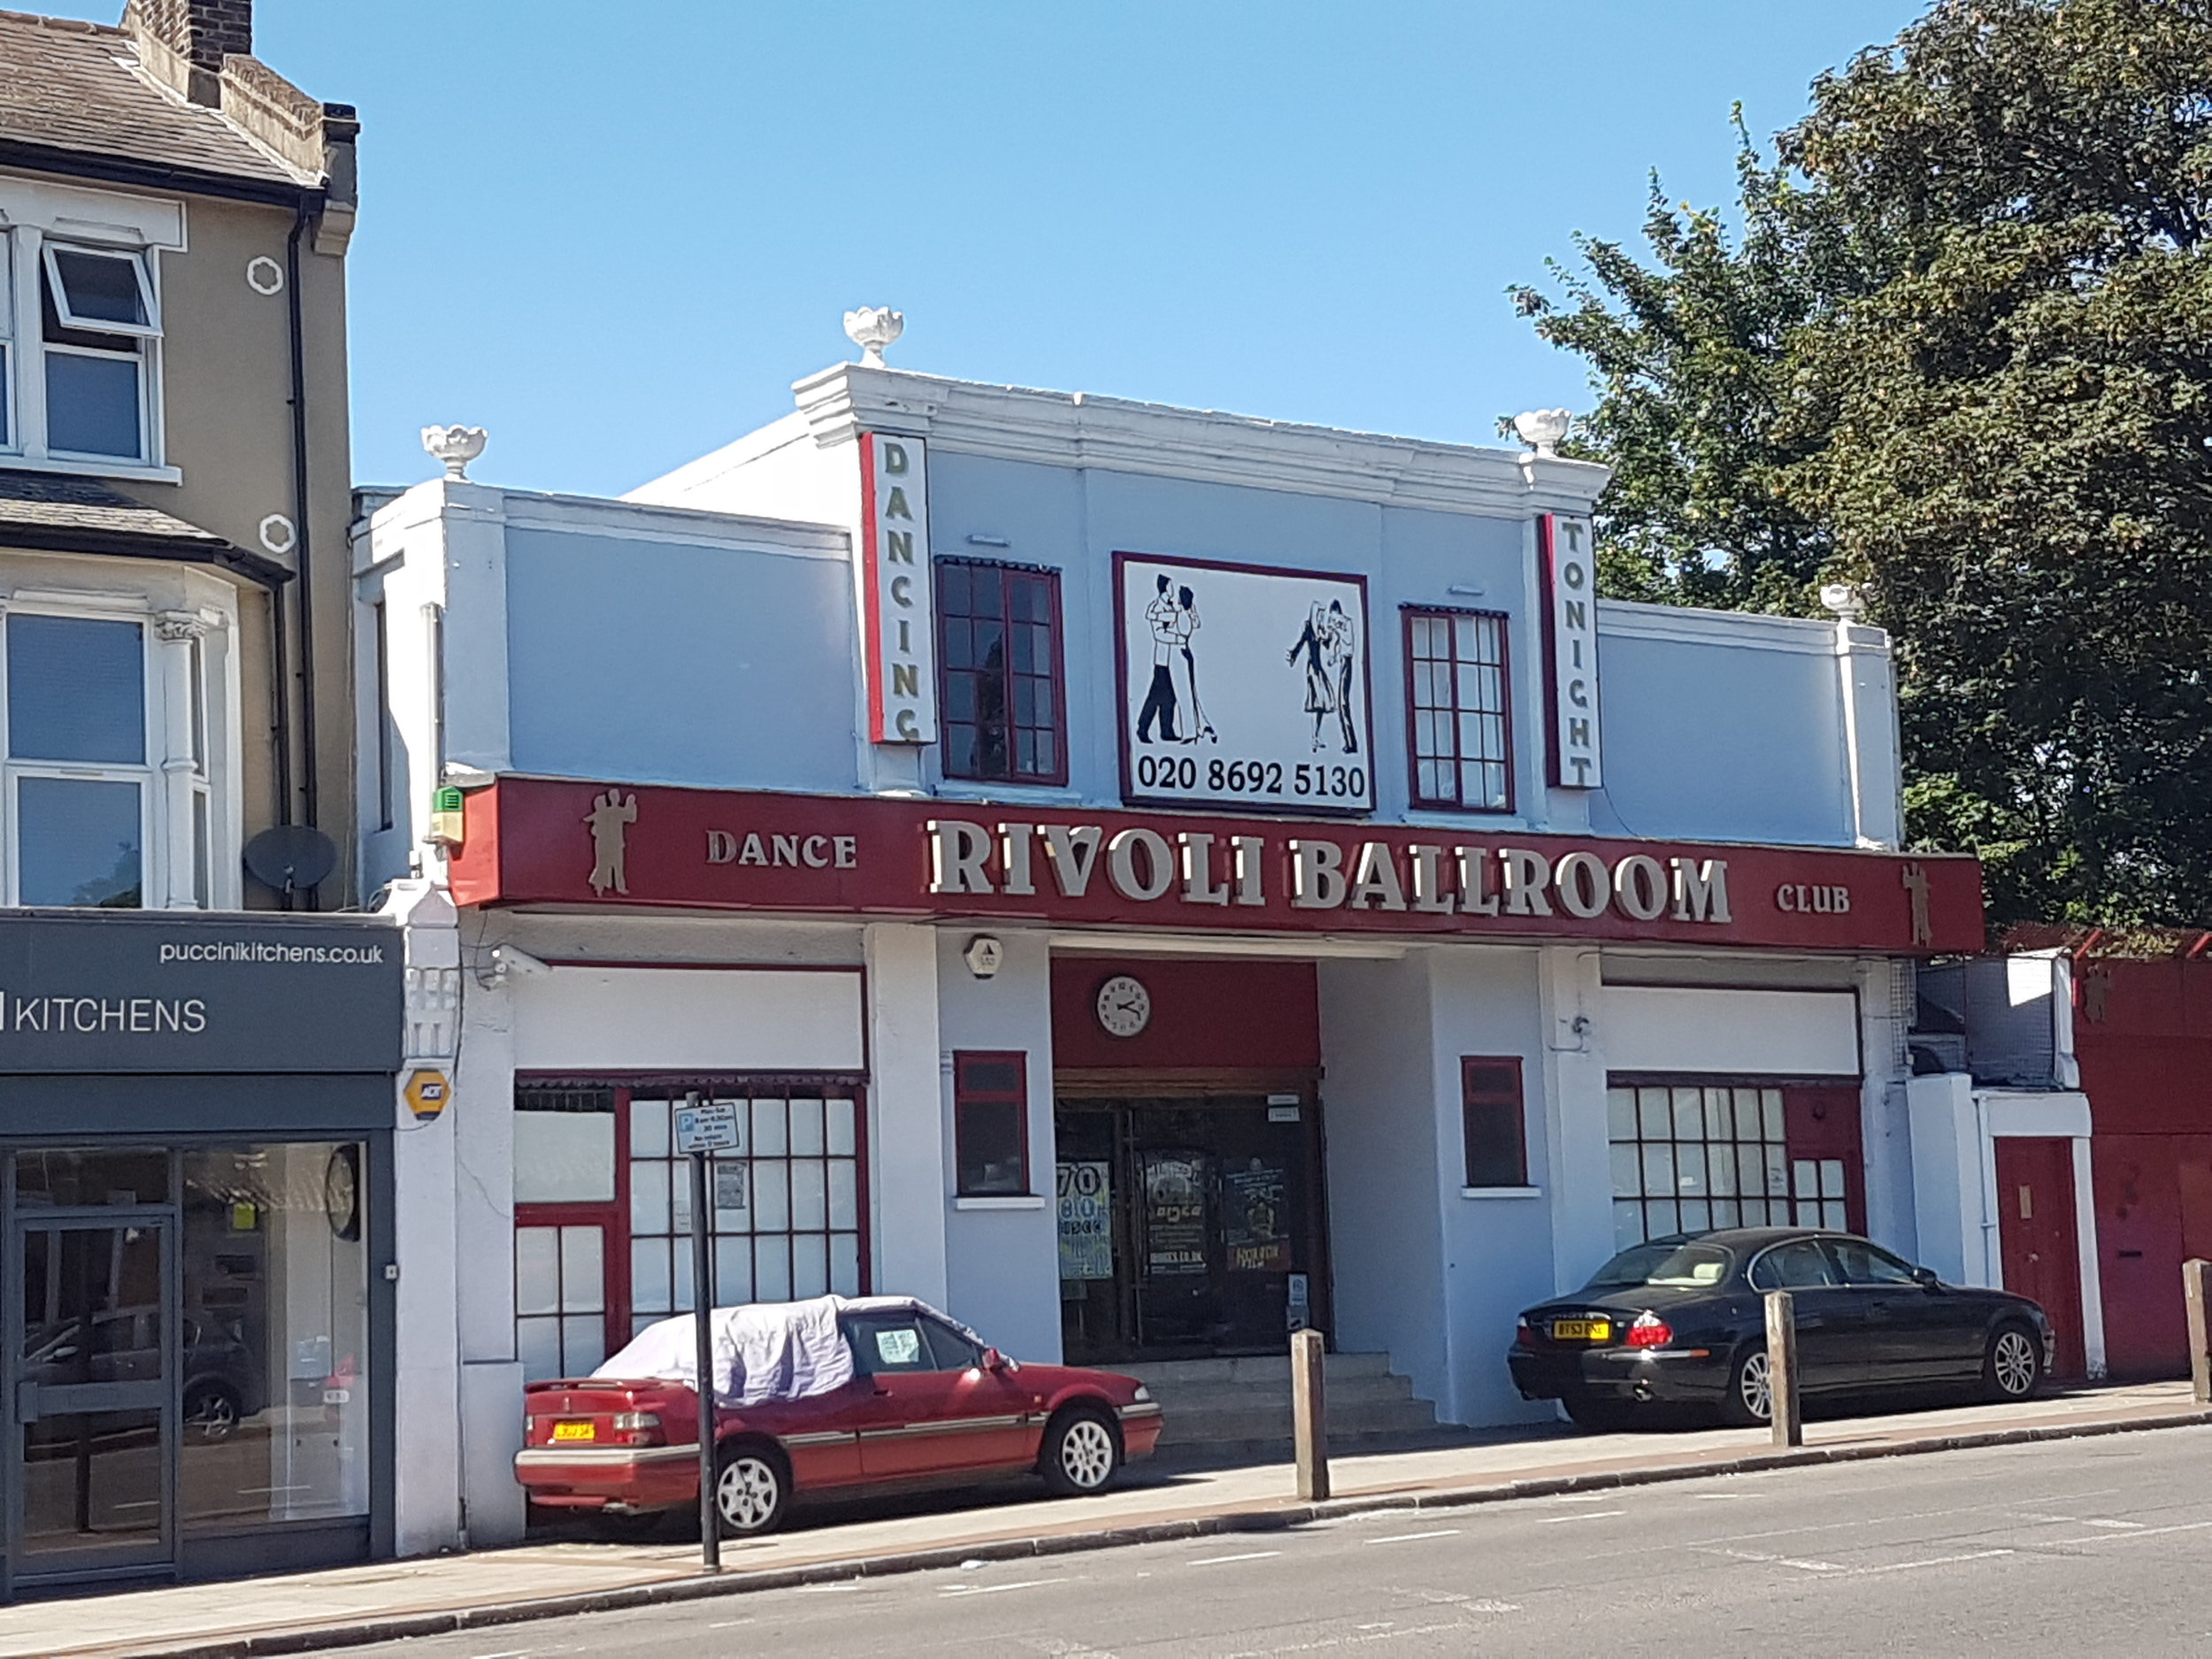 Rivoli Ballroom Crofton Park South London Club